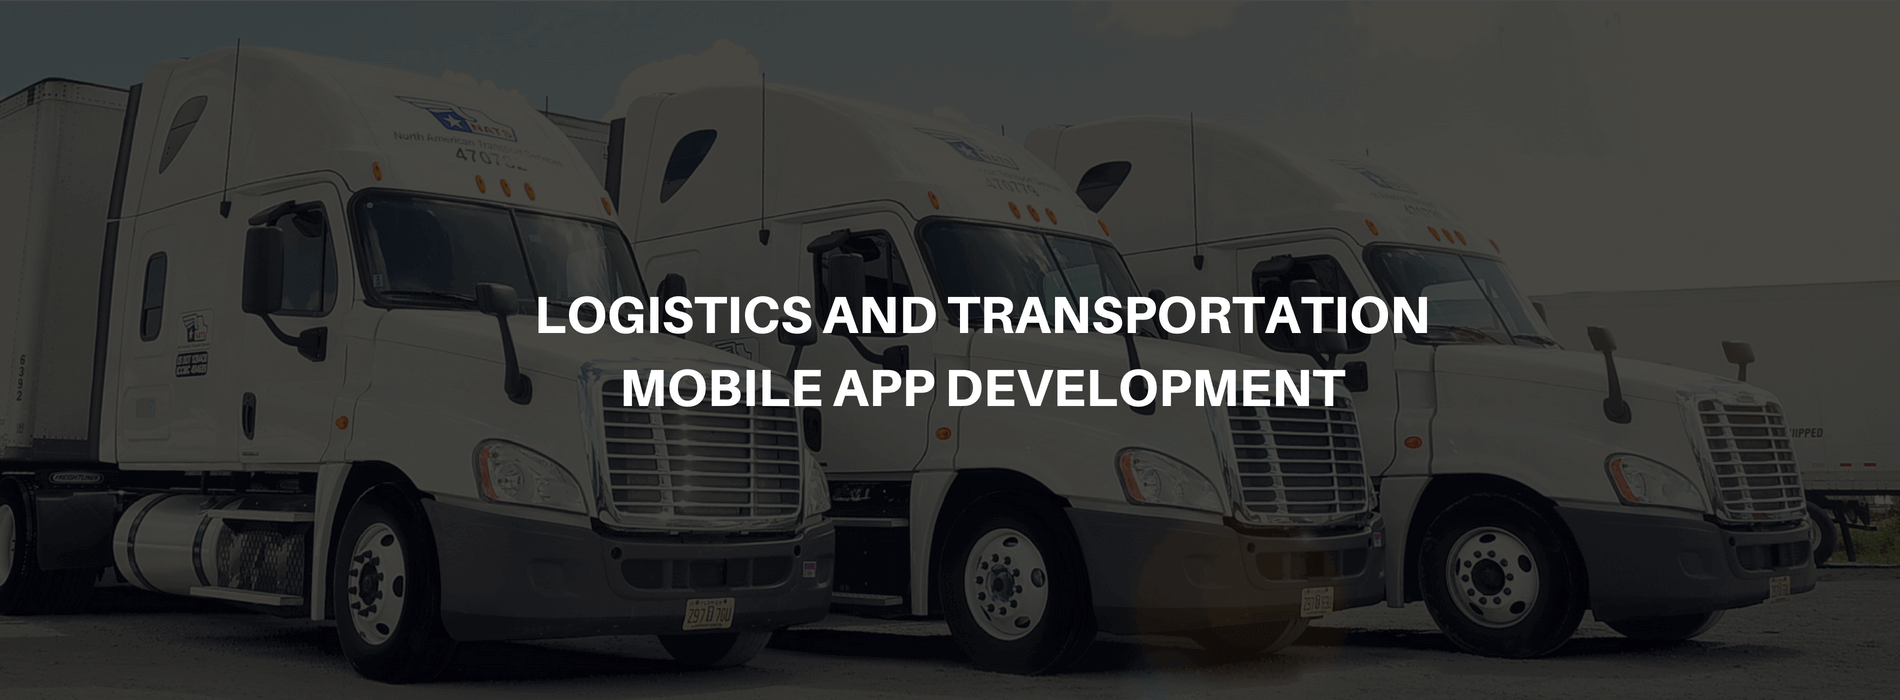 Cost and Features of Logistics and Transportation App